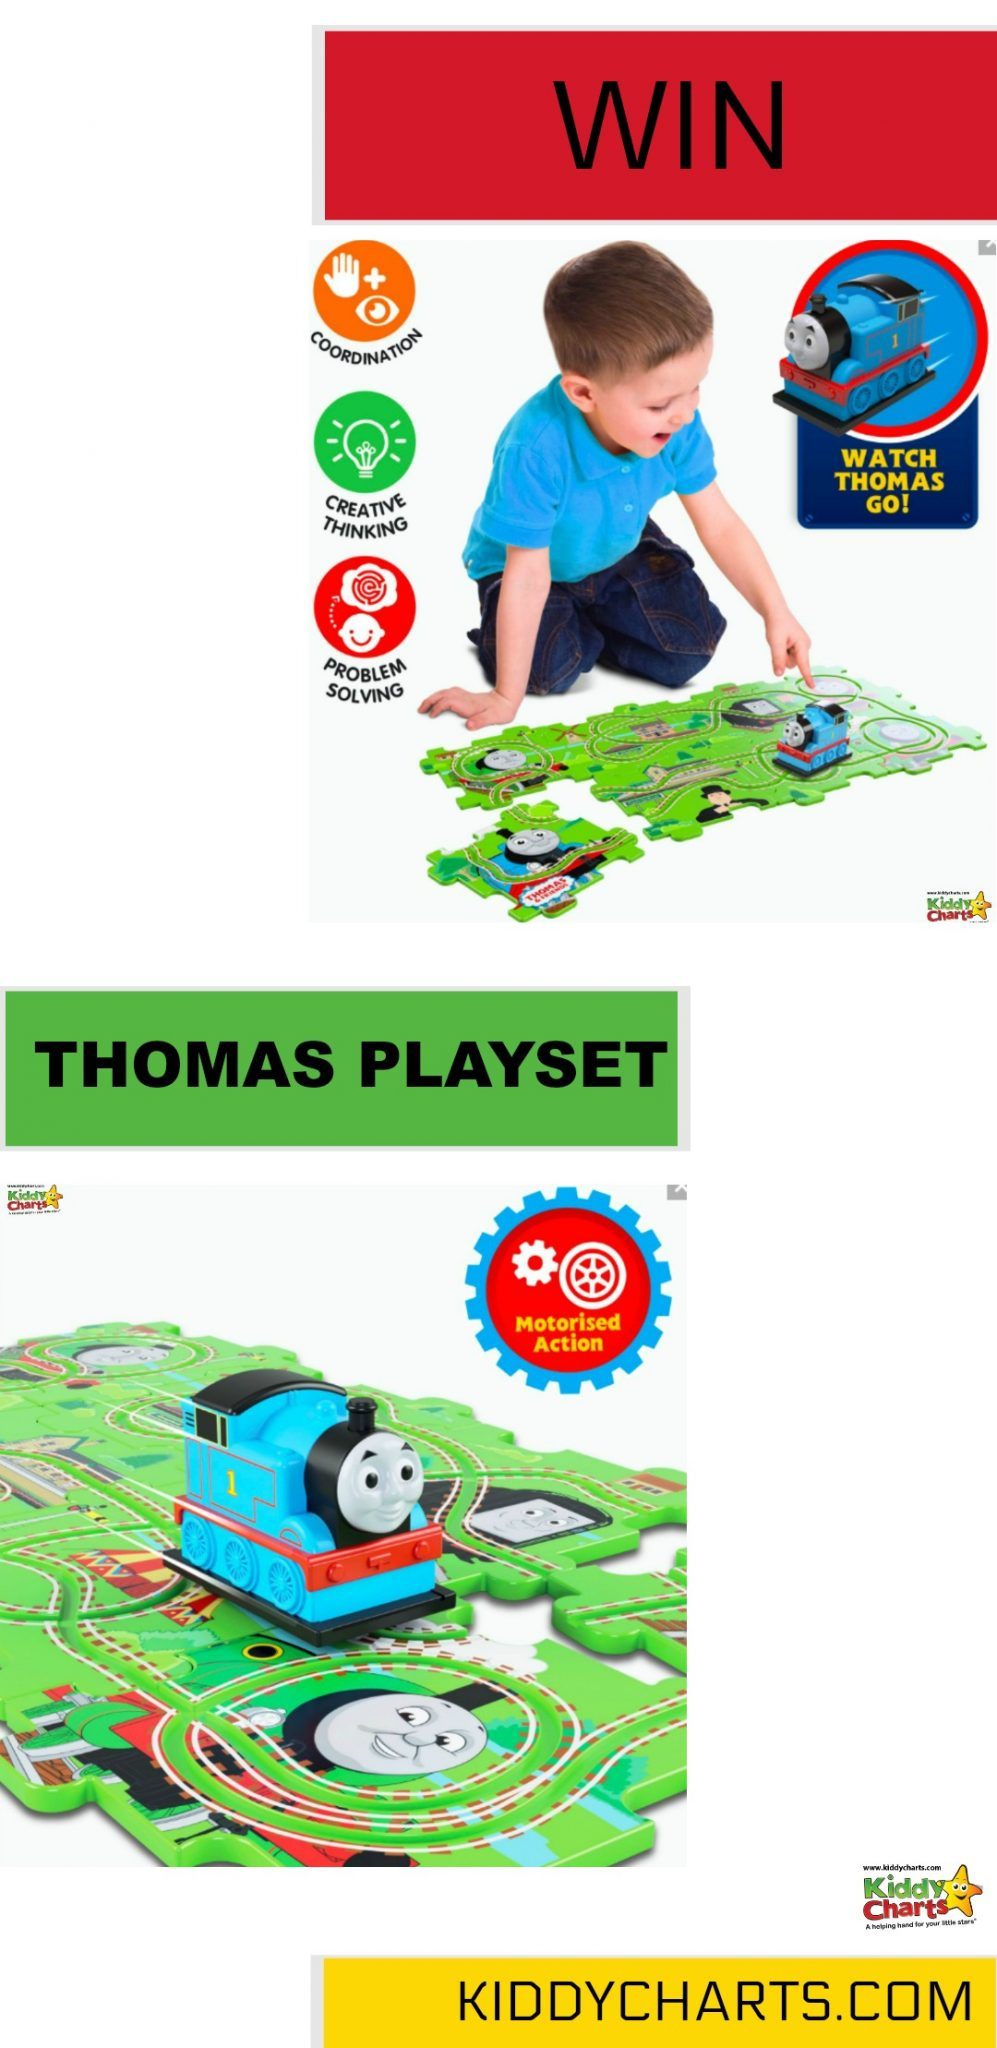 Win a gorgeous Thomas playset for your kids (Closes 24th May) #kids #giveaways #toys